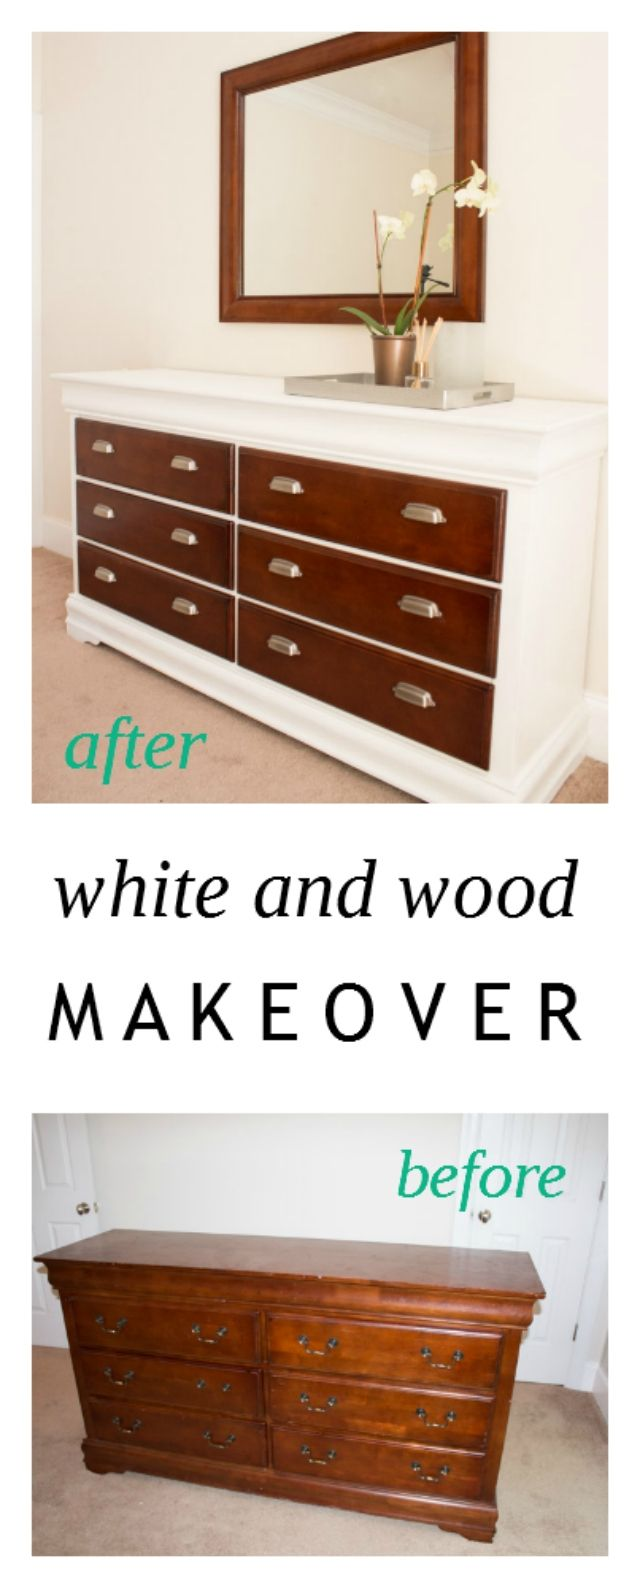 White and Wood Thrift Store Dresser and Nightstand Makeover | Life in Velvet